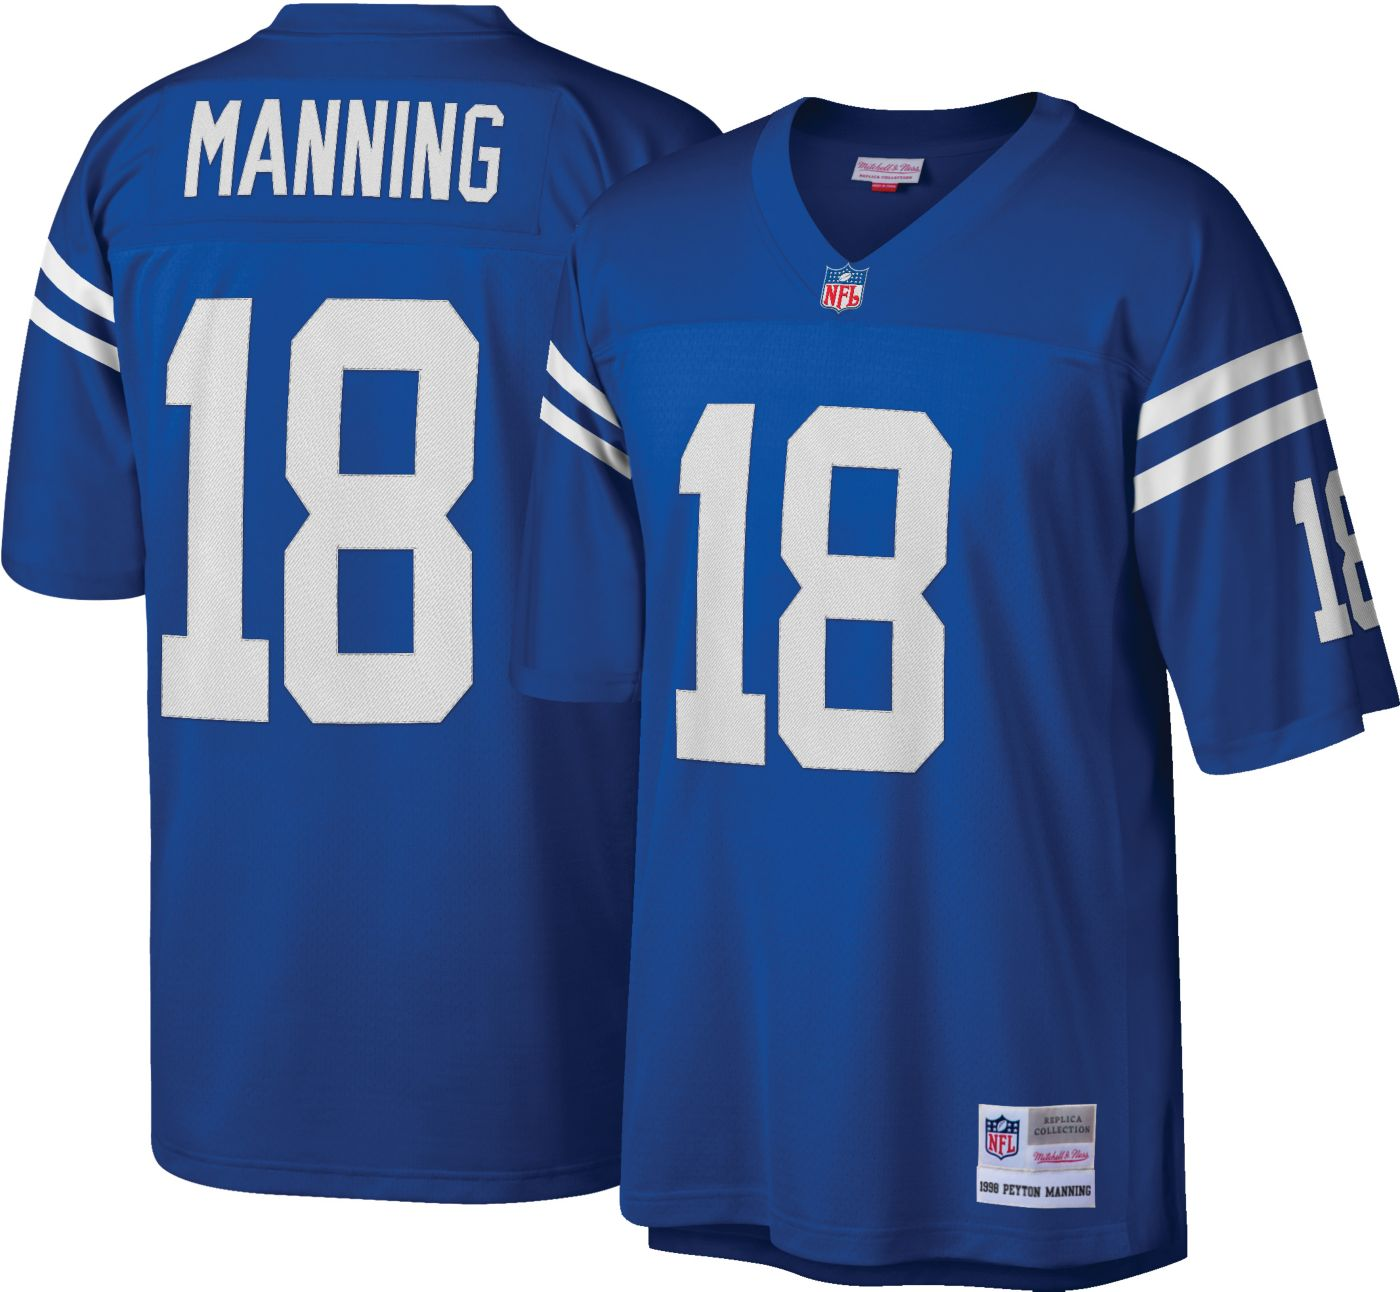 Mitchell & Ness Men's 1998 Game Jersey Indianapolis Colts Peyton Manning #18